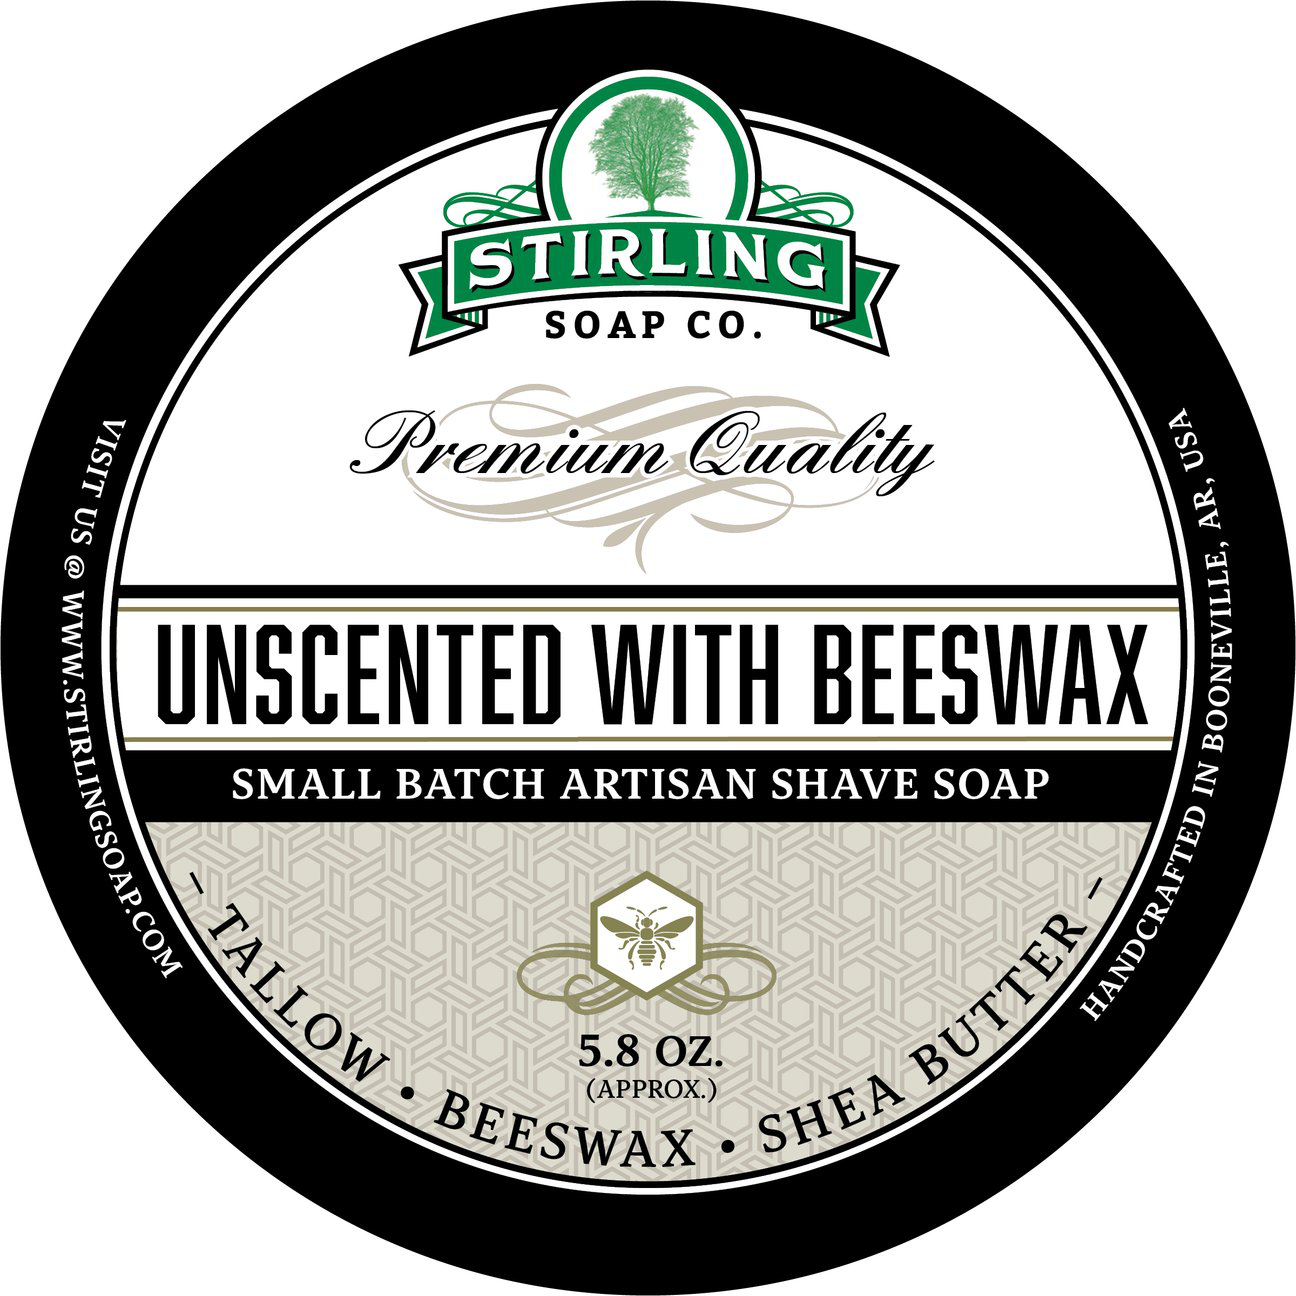 Stirling Soap Co. - Unscented with Beeswax - Soap image